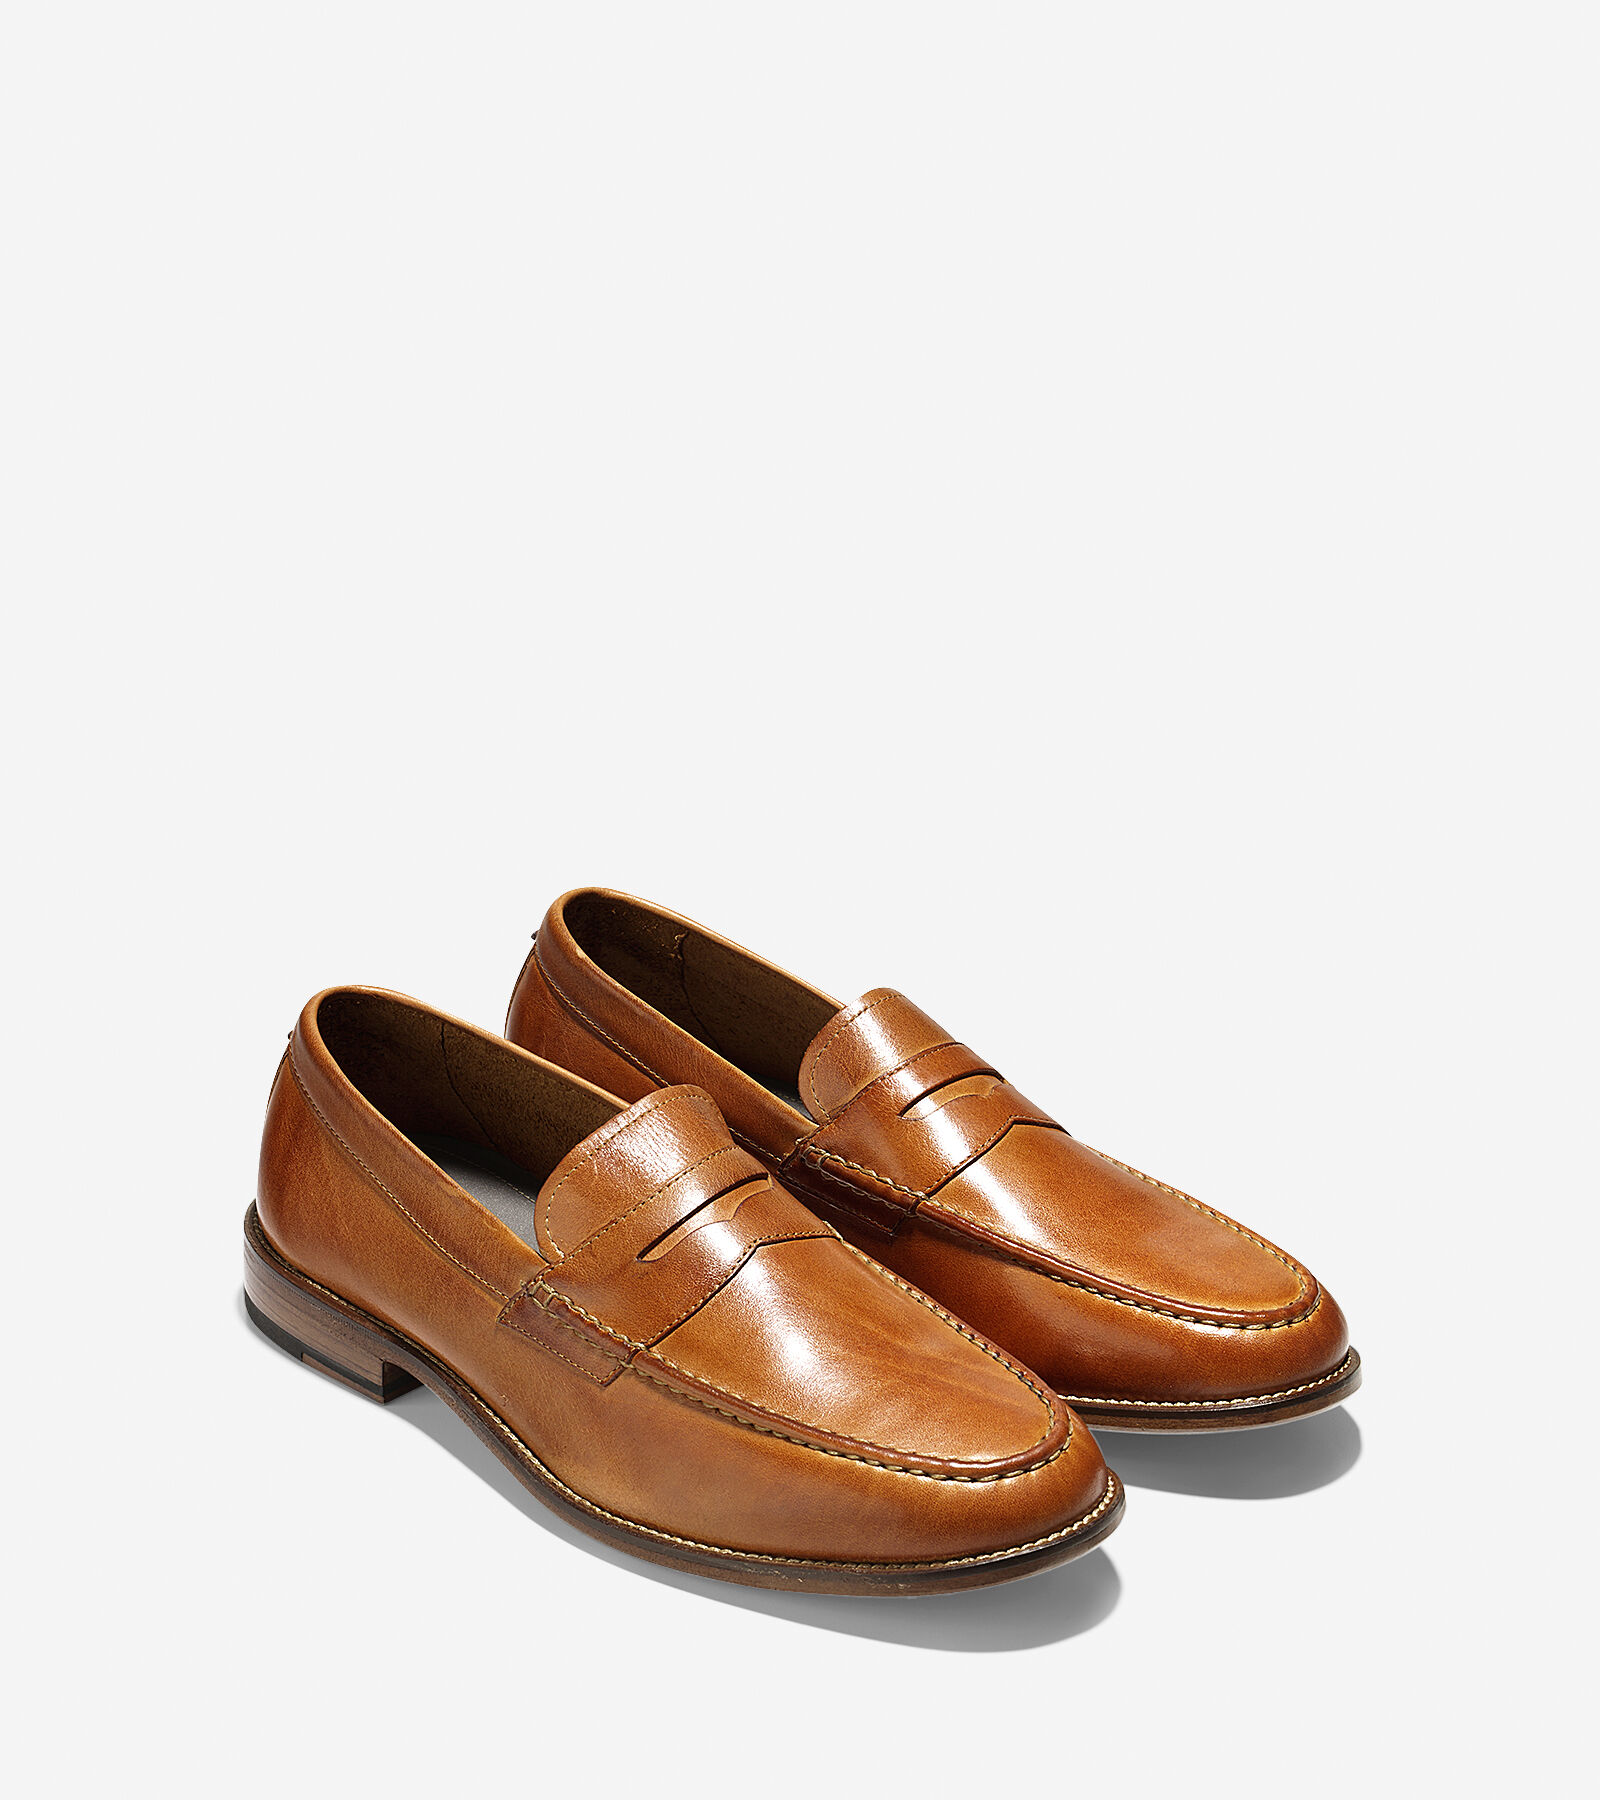 ... Willet Penny Loafer; Willet Penny Loafer. #colehaan